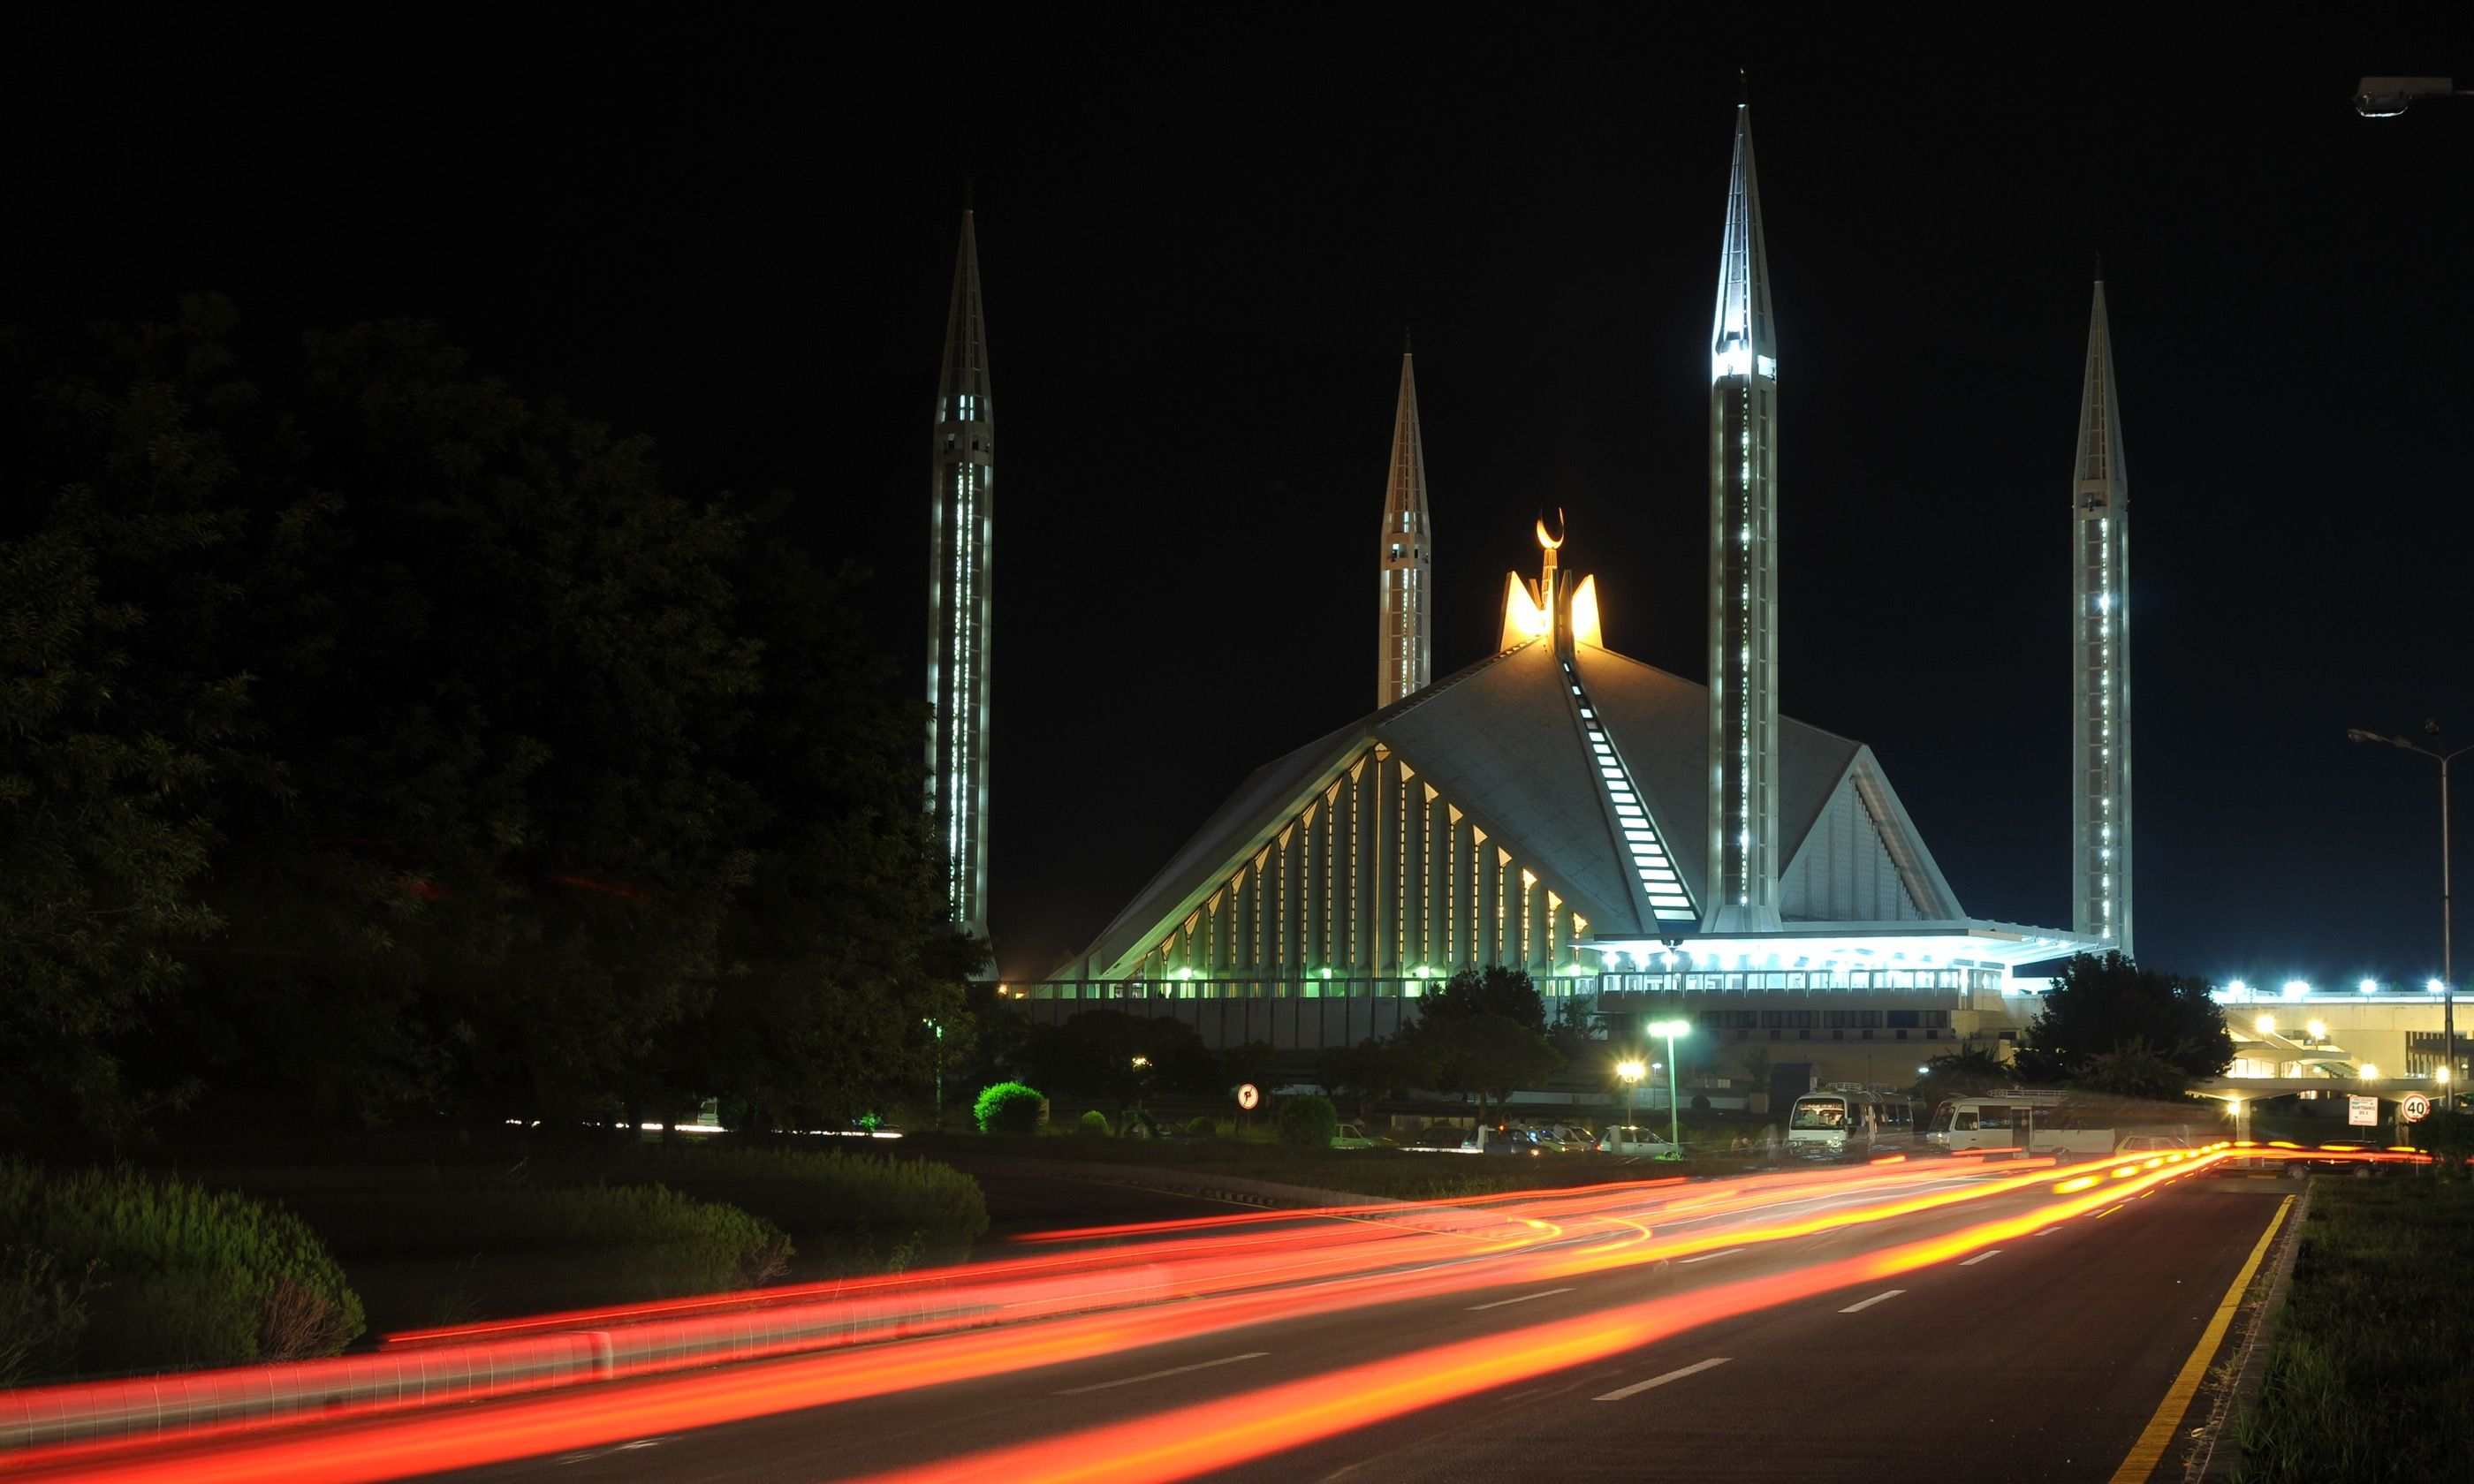 Night view of Faisal Mosque (Dreamstime)